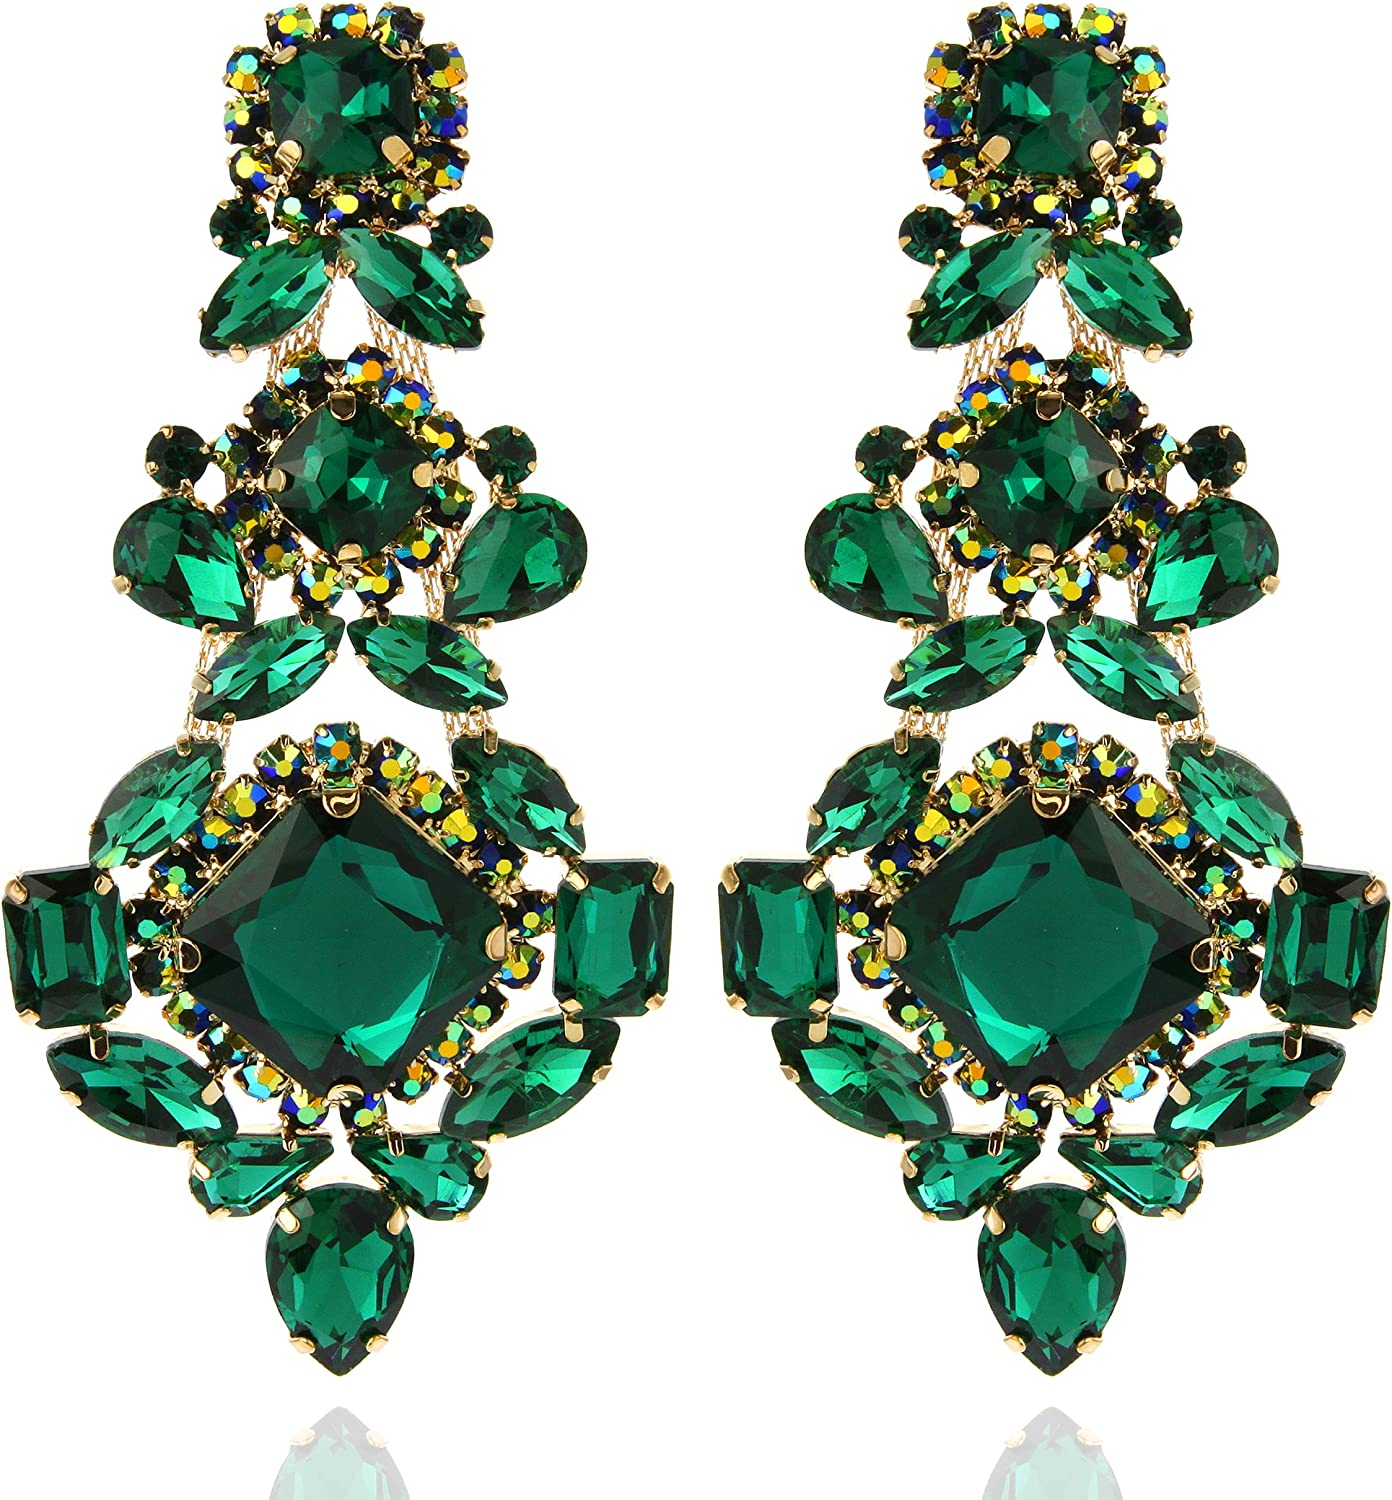 SP SOPHIA COLLECTION Women's Stunning Large Austrian Crystal Medieval Inspired 3 Tiered Clip On Earrings